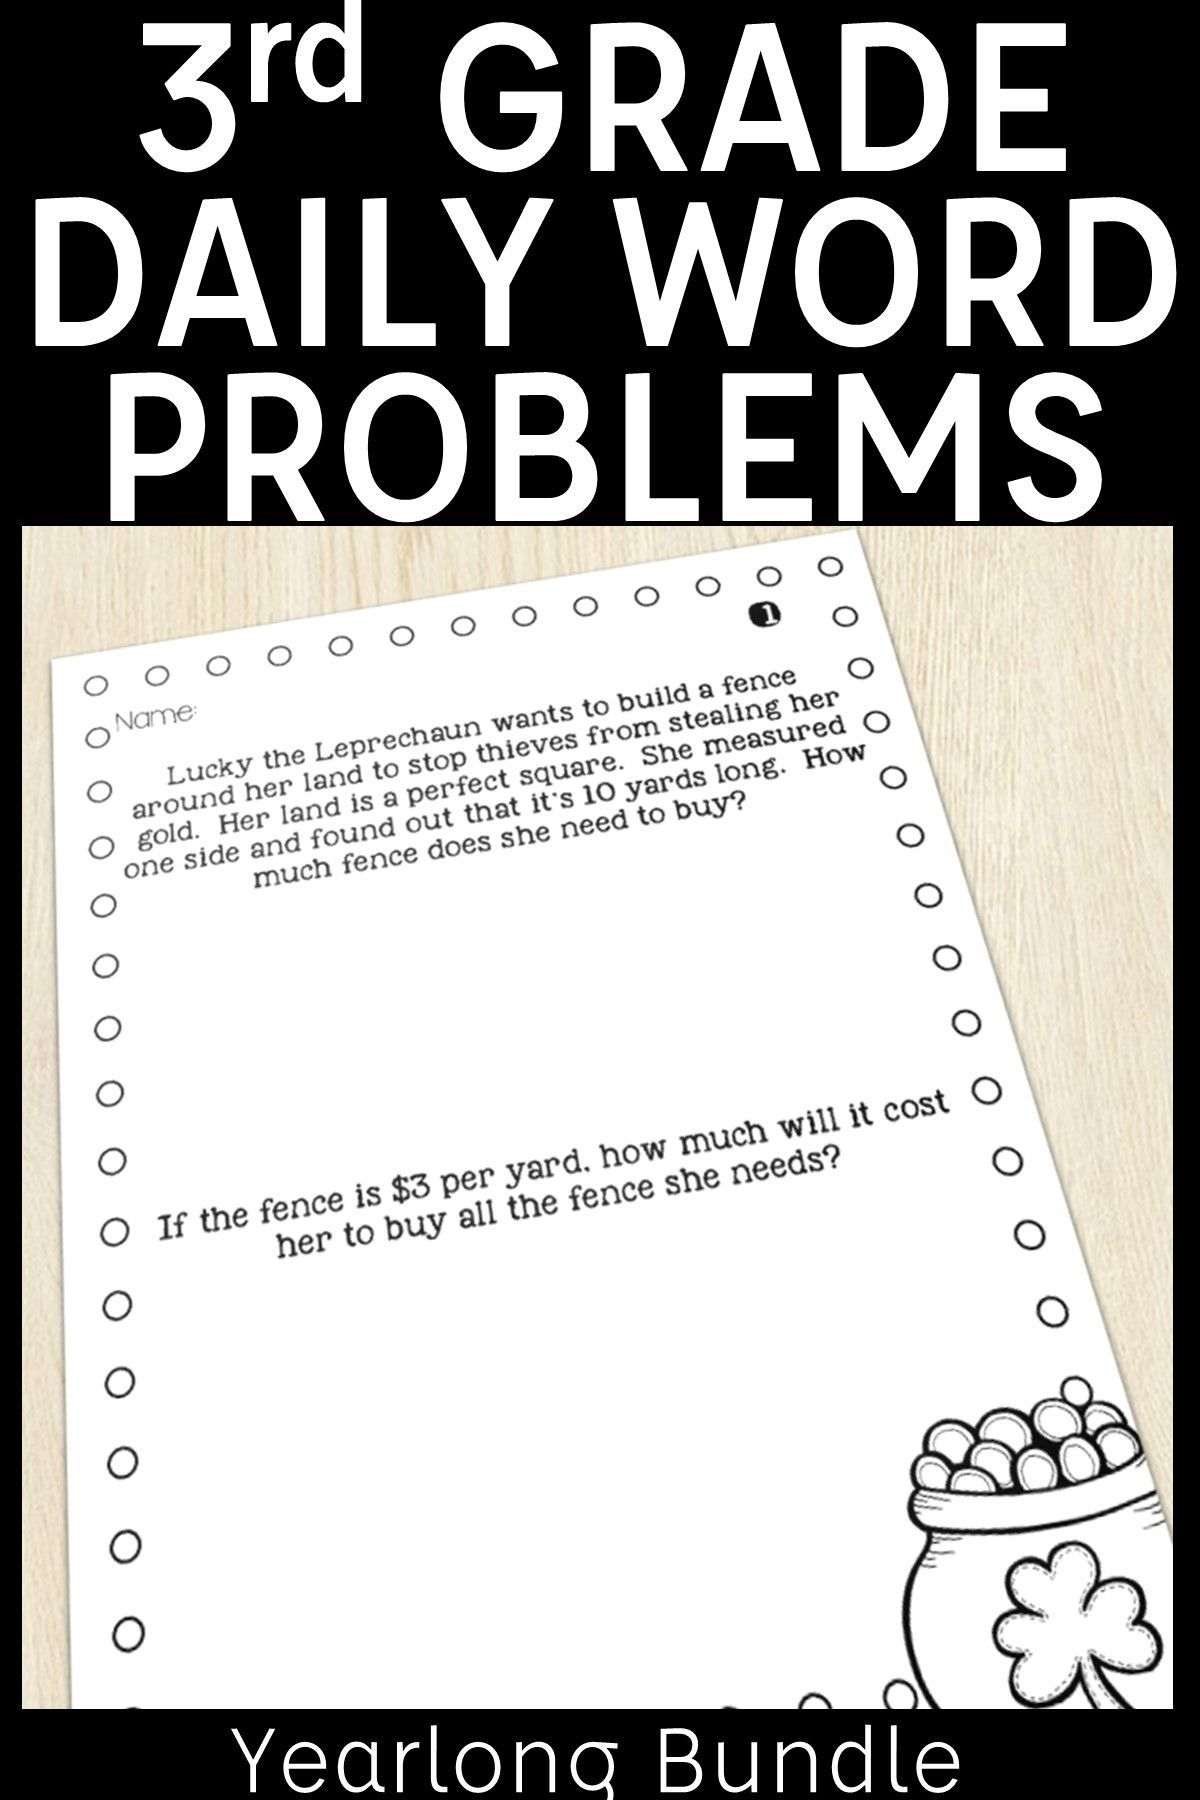 medium resolution of https://cute766.info/3rd-grade-multi-step-word-problems-of-the-day-bundle-3rd-grade-words-word-problems/